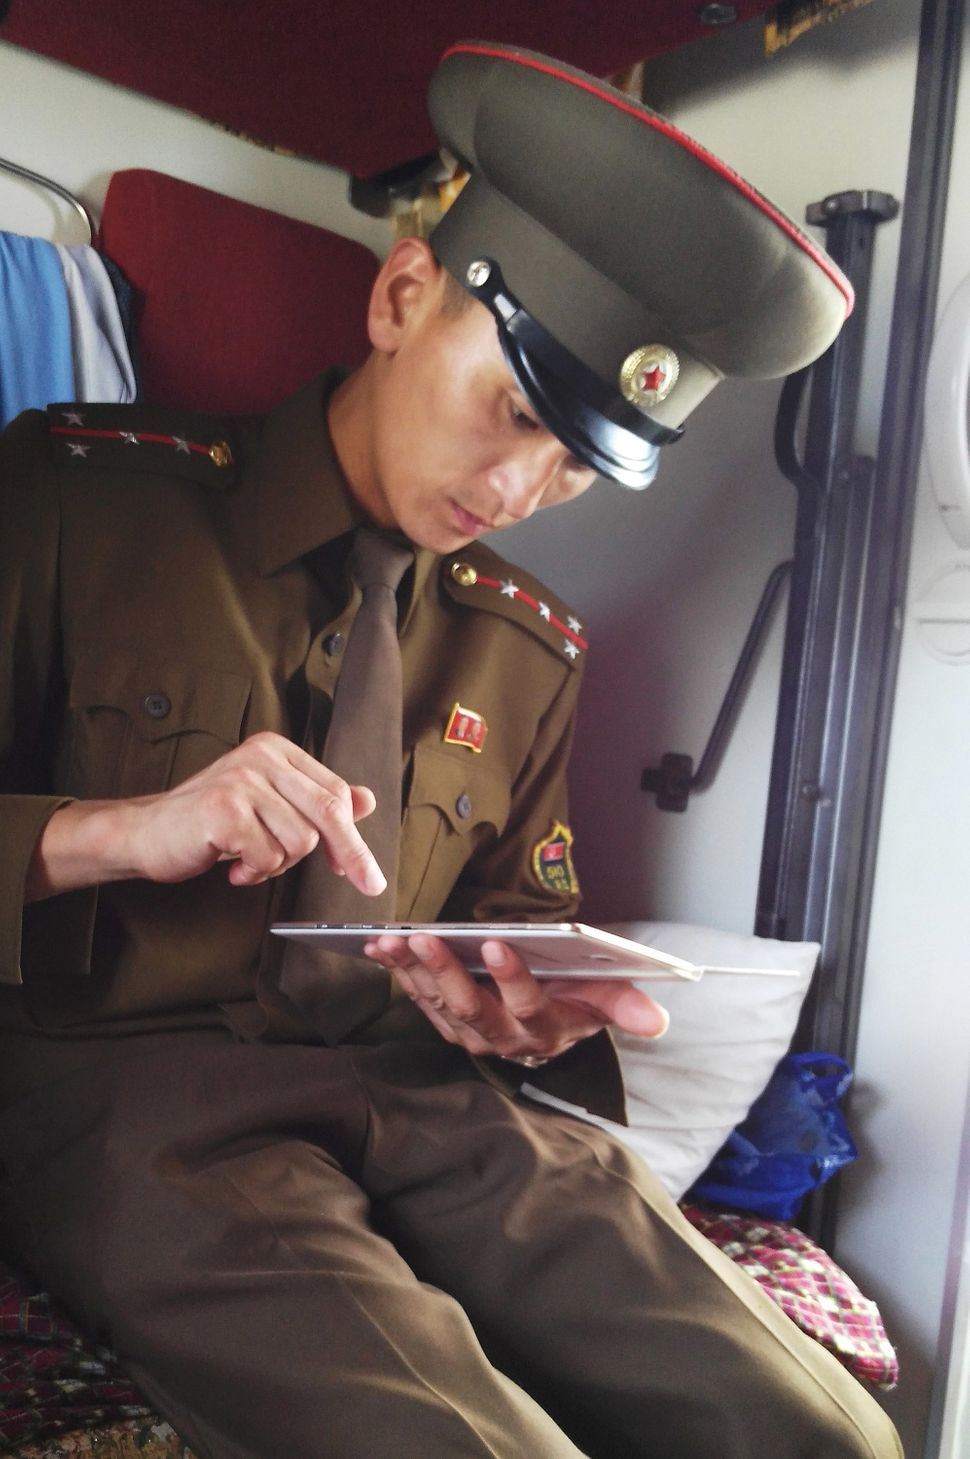 A customs officer checks a passenger's mobile device.